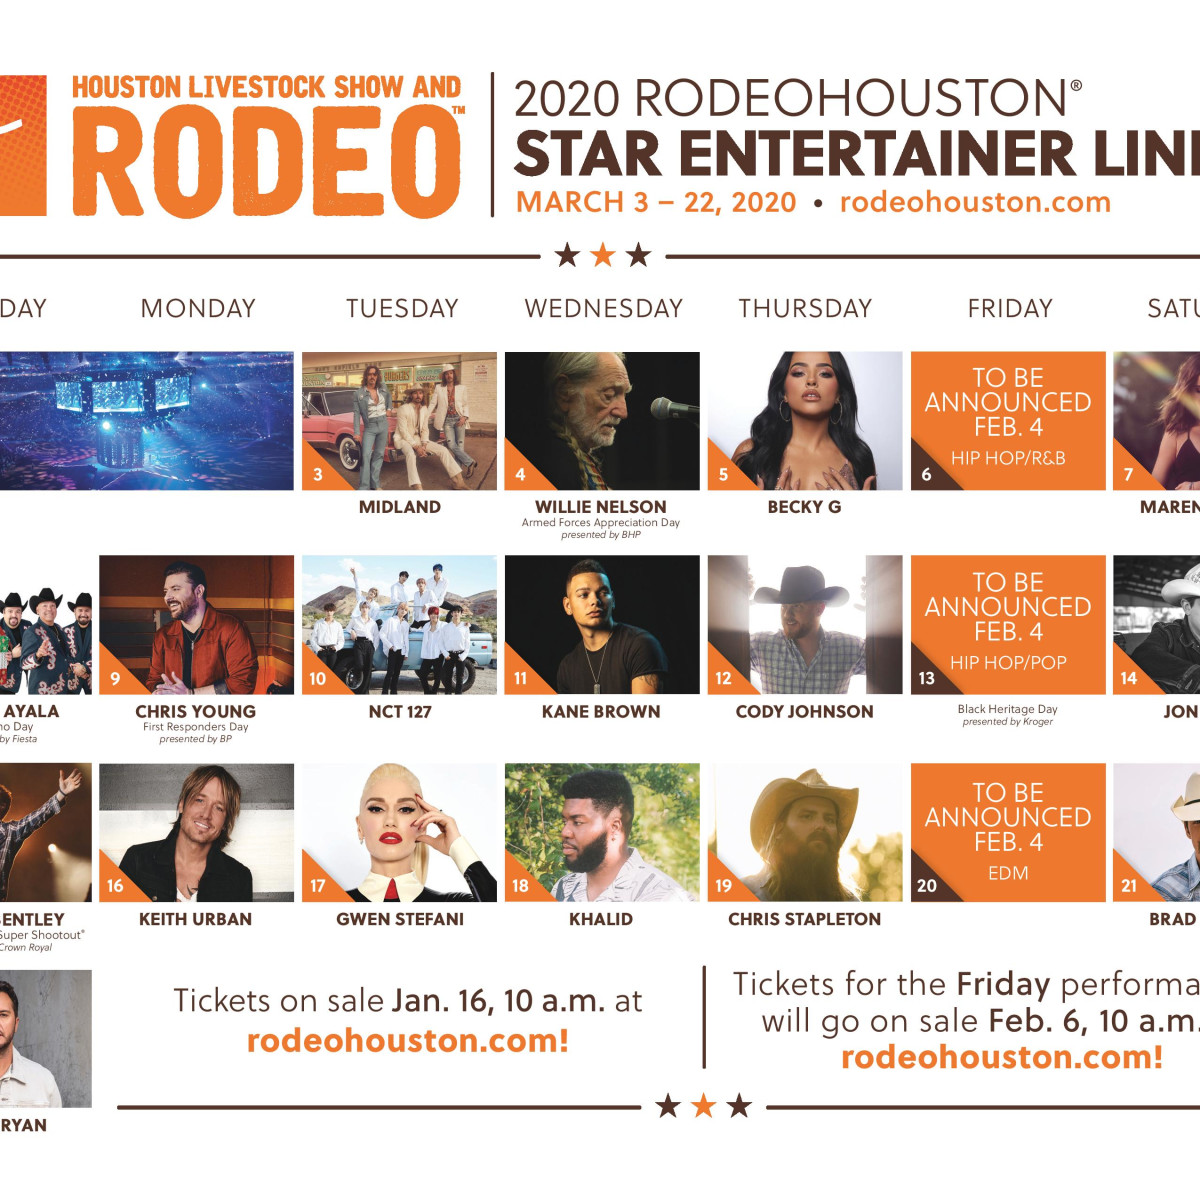 RodeoHouston 2020 line-up